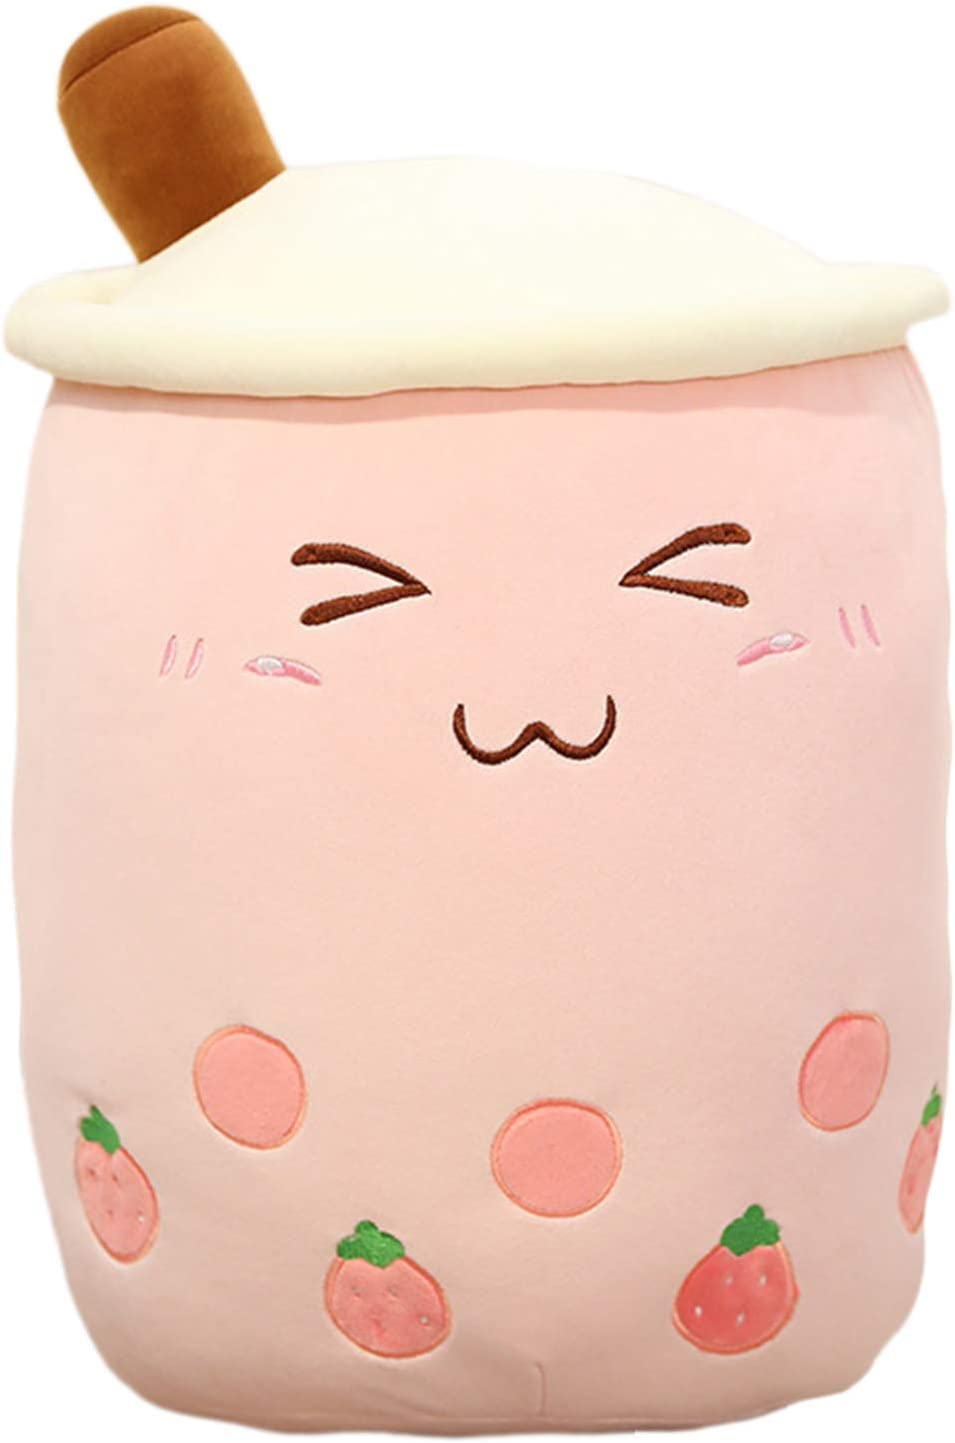 Bubble Tea Plush Pillow Toy Stuffed Body Pillow Plushie Cartoon Cup Shaped Pillow Doll, Cute Soft Hugging Pillow Back Cushion (Pink-Small Eyes, 50cm/19.68inch)